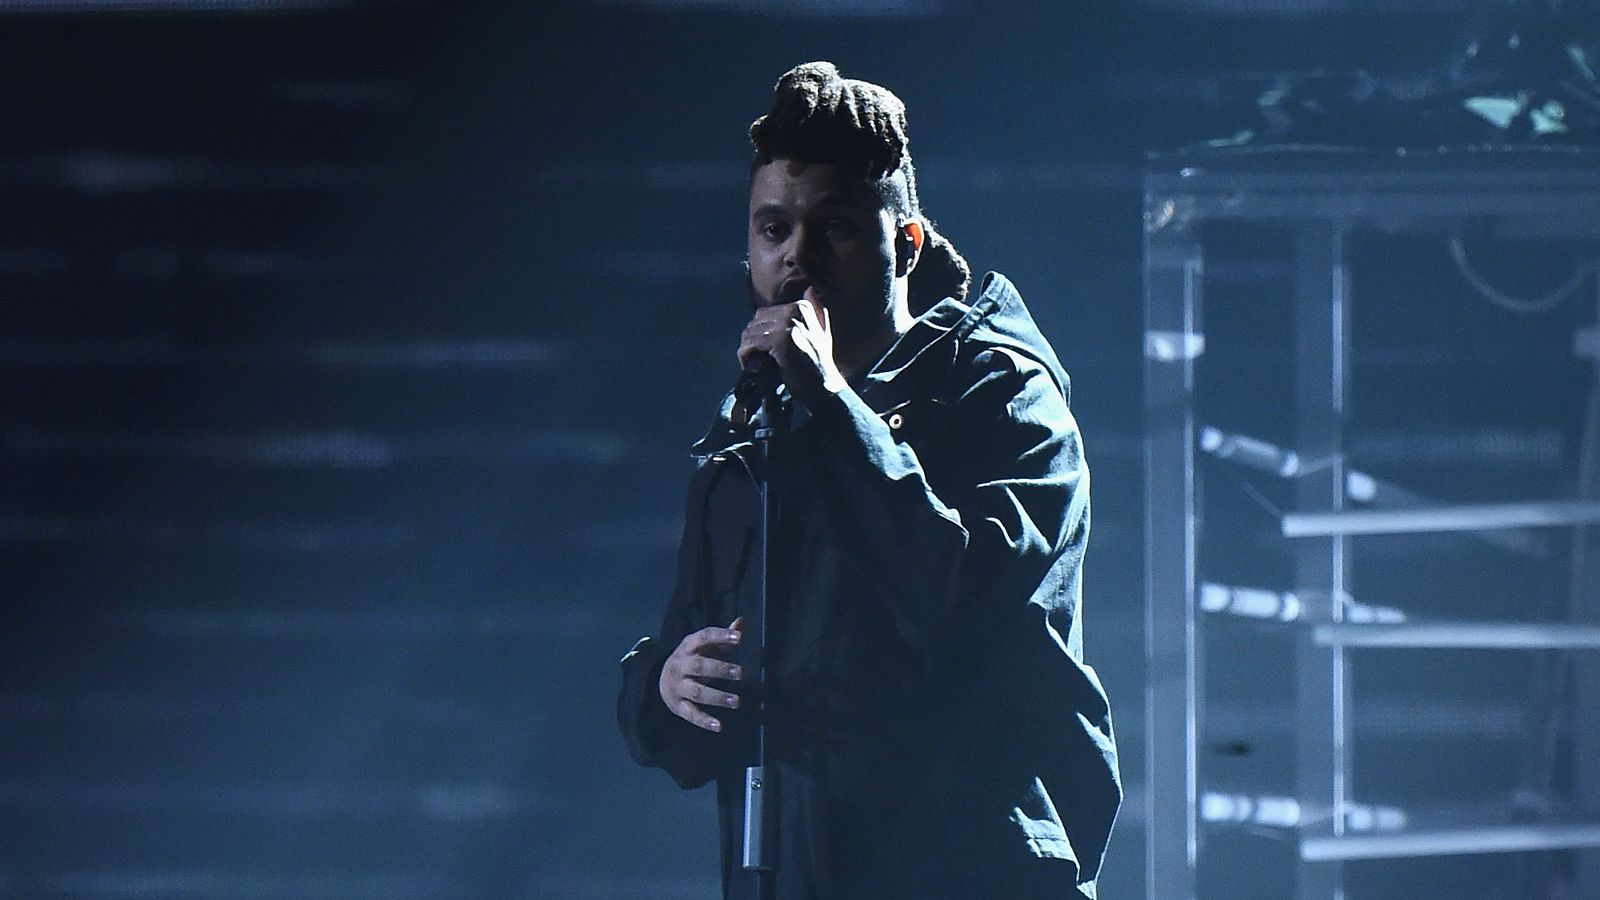 The Weeknd's new album Starboy is out November 25th - The ...